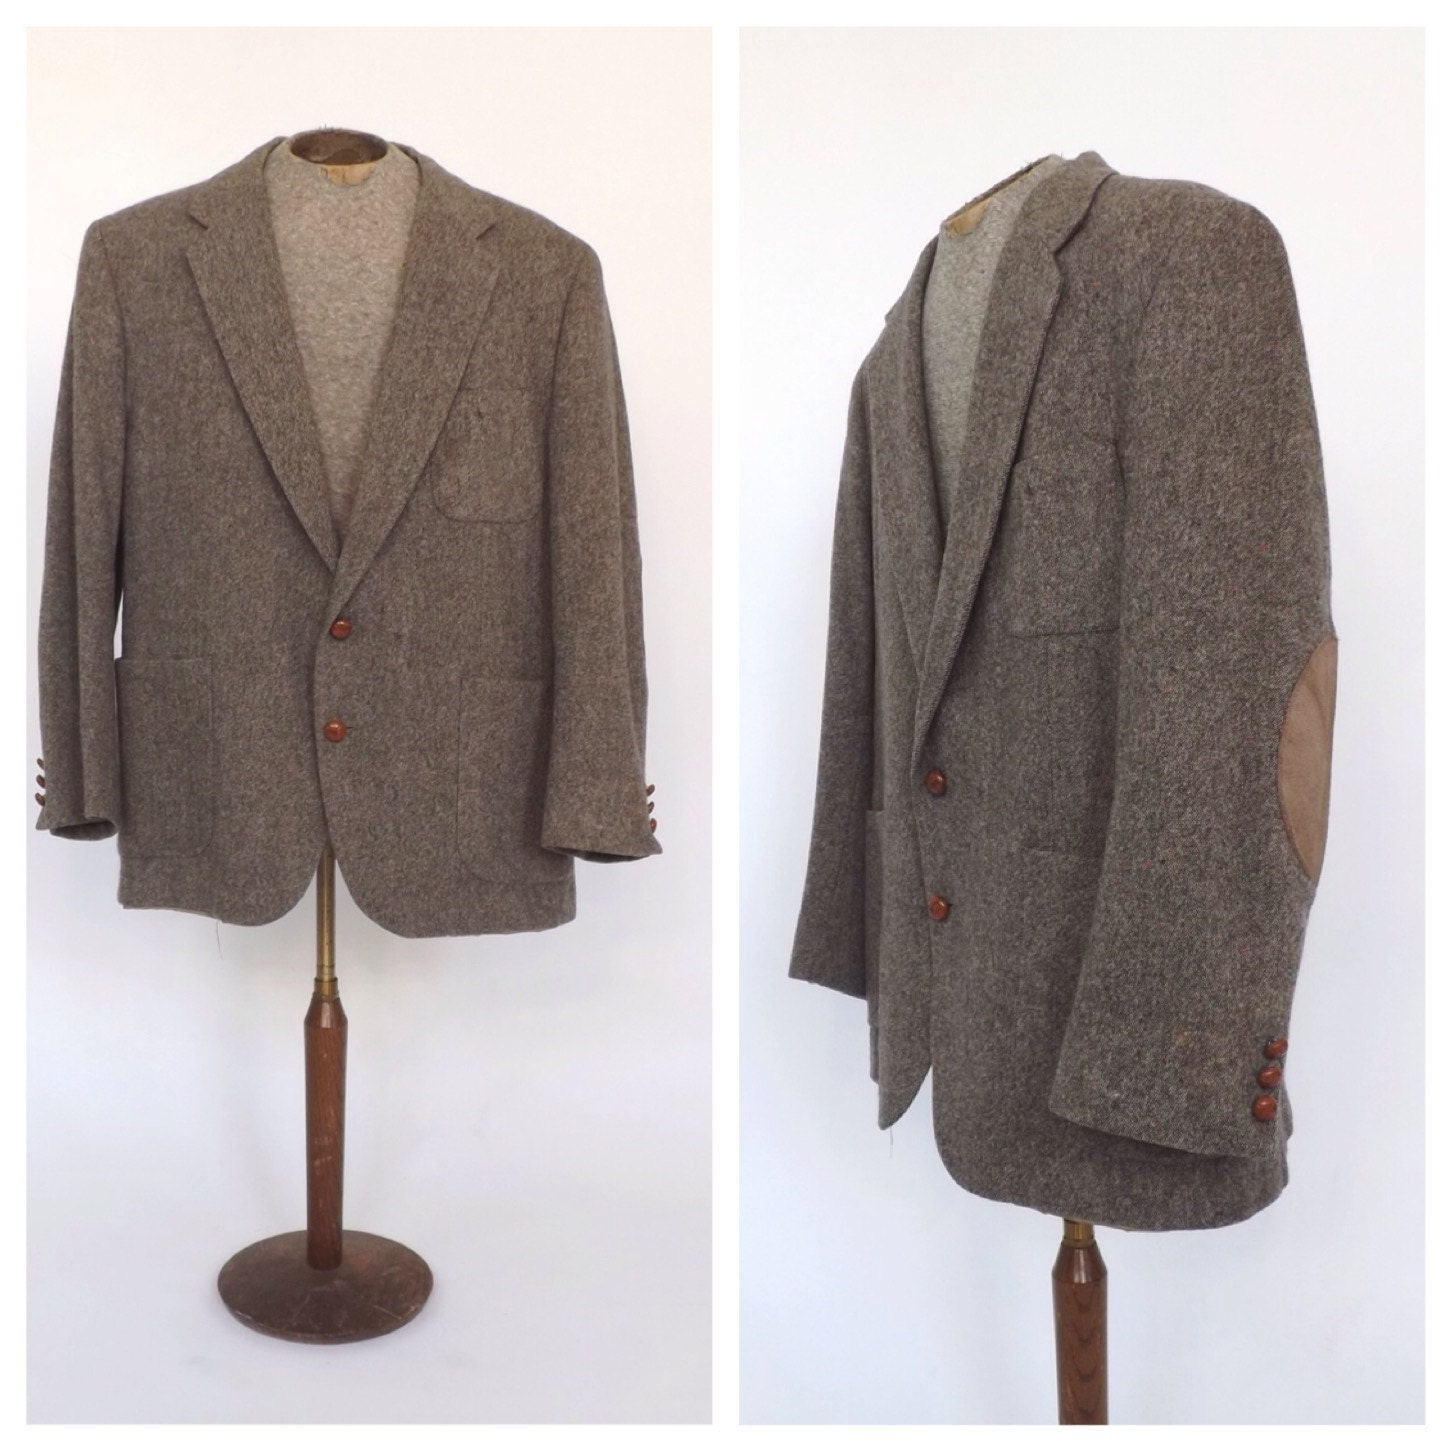 vintage men 39 s jacket tan wool tweed suede elbow patch. Black Bedroom Furniture Sets. Home Design Ideas